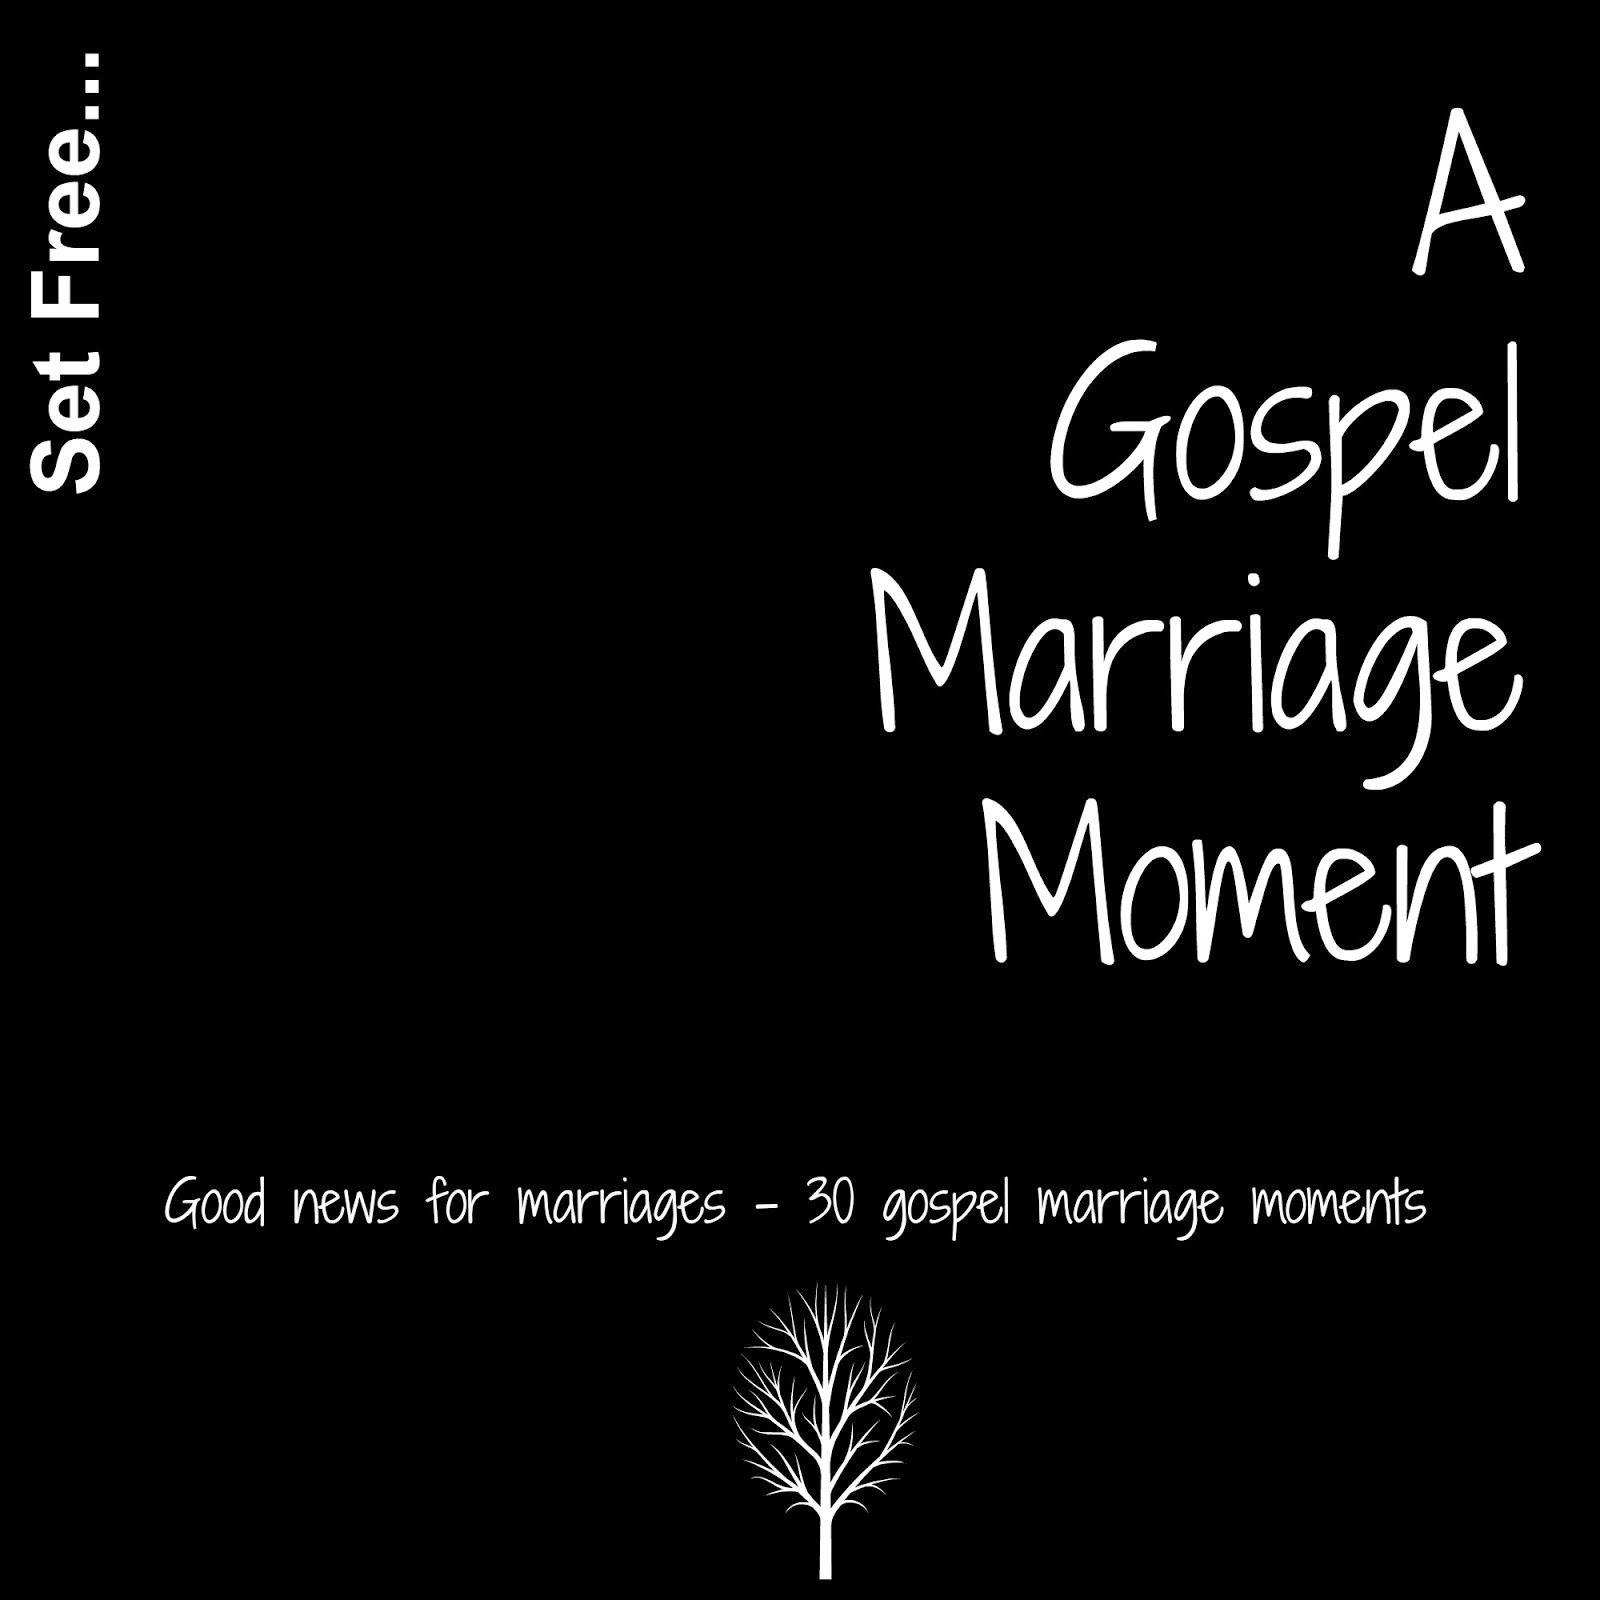 A Gospel Marriage Moment